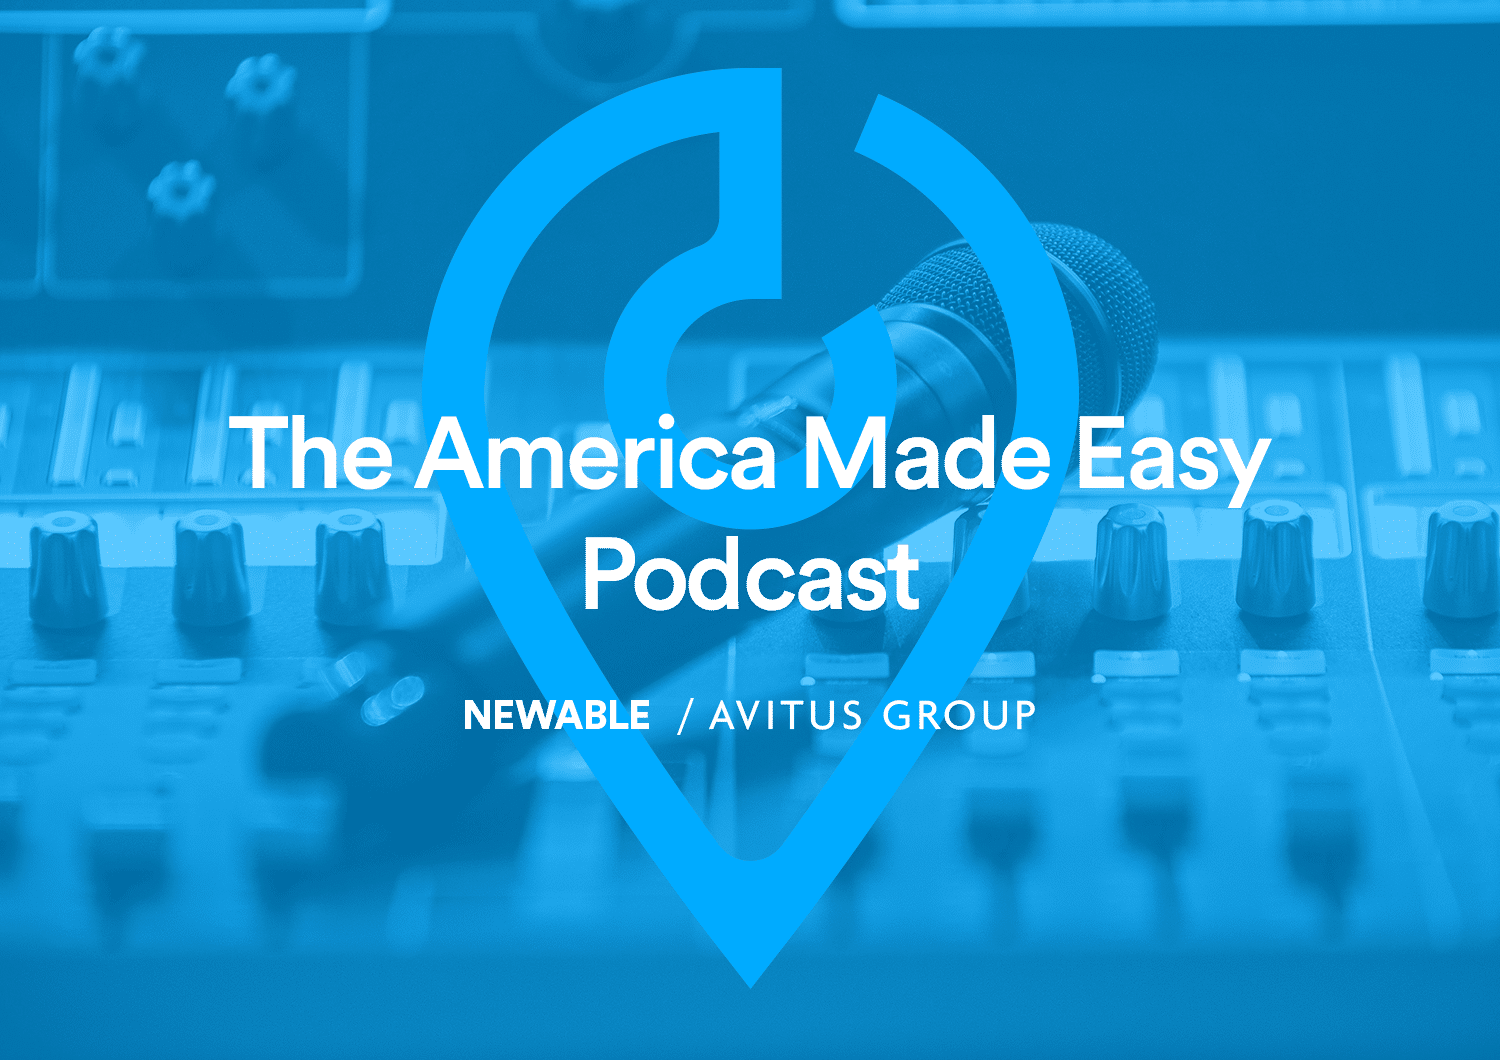 America Made Easy Podcast